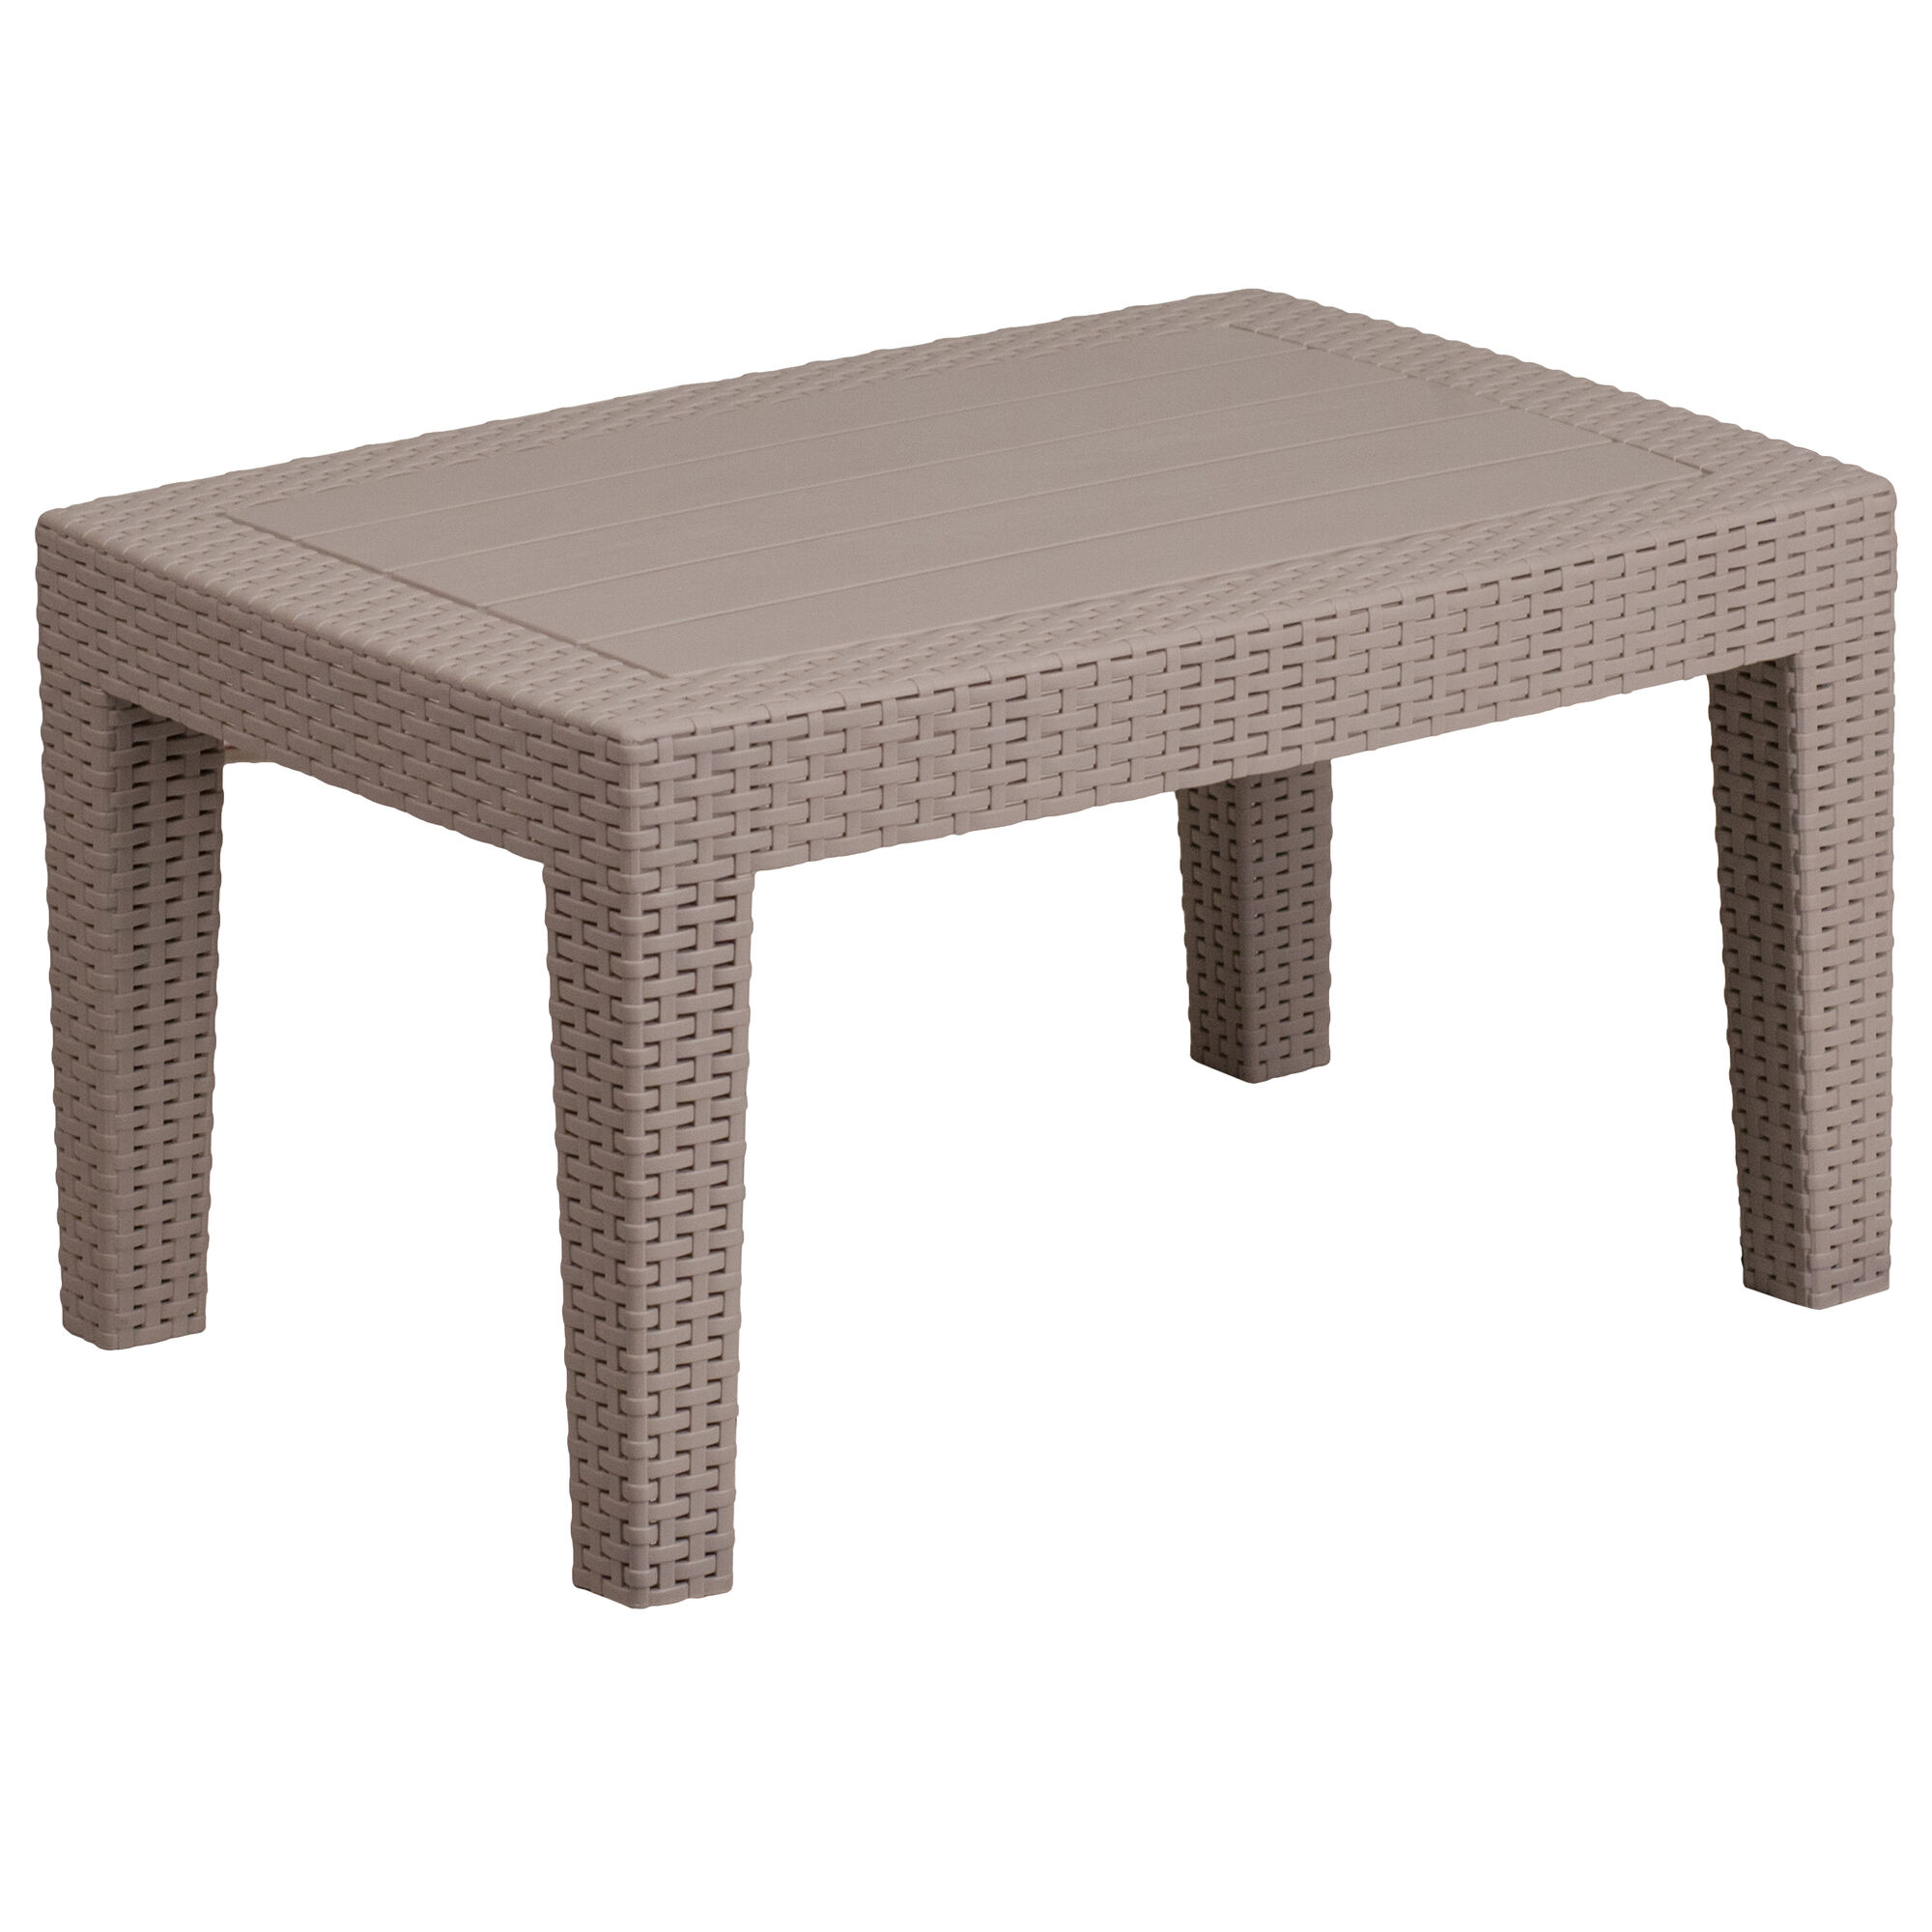 Small Grey Rattan Coffee Table: Our Light Gray Faux Rattan Coffee Table Is On Sale Now